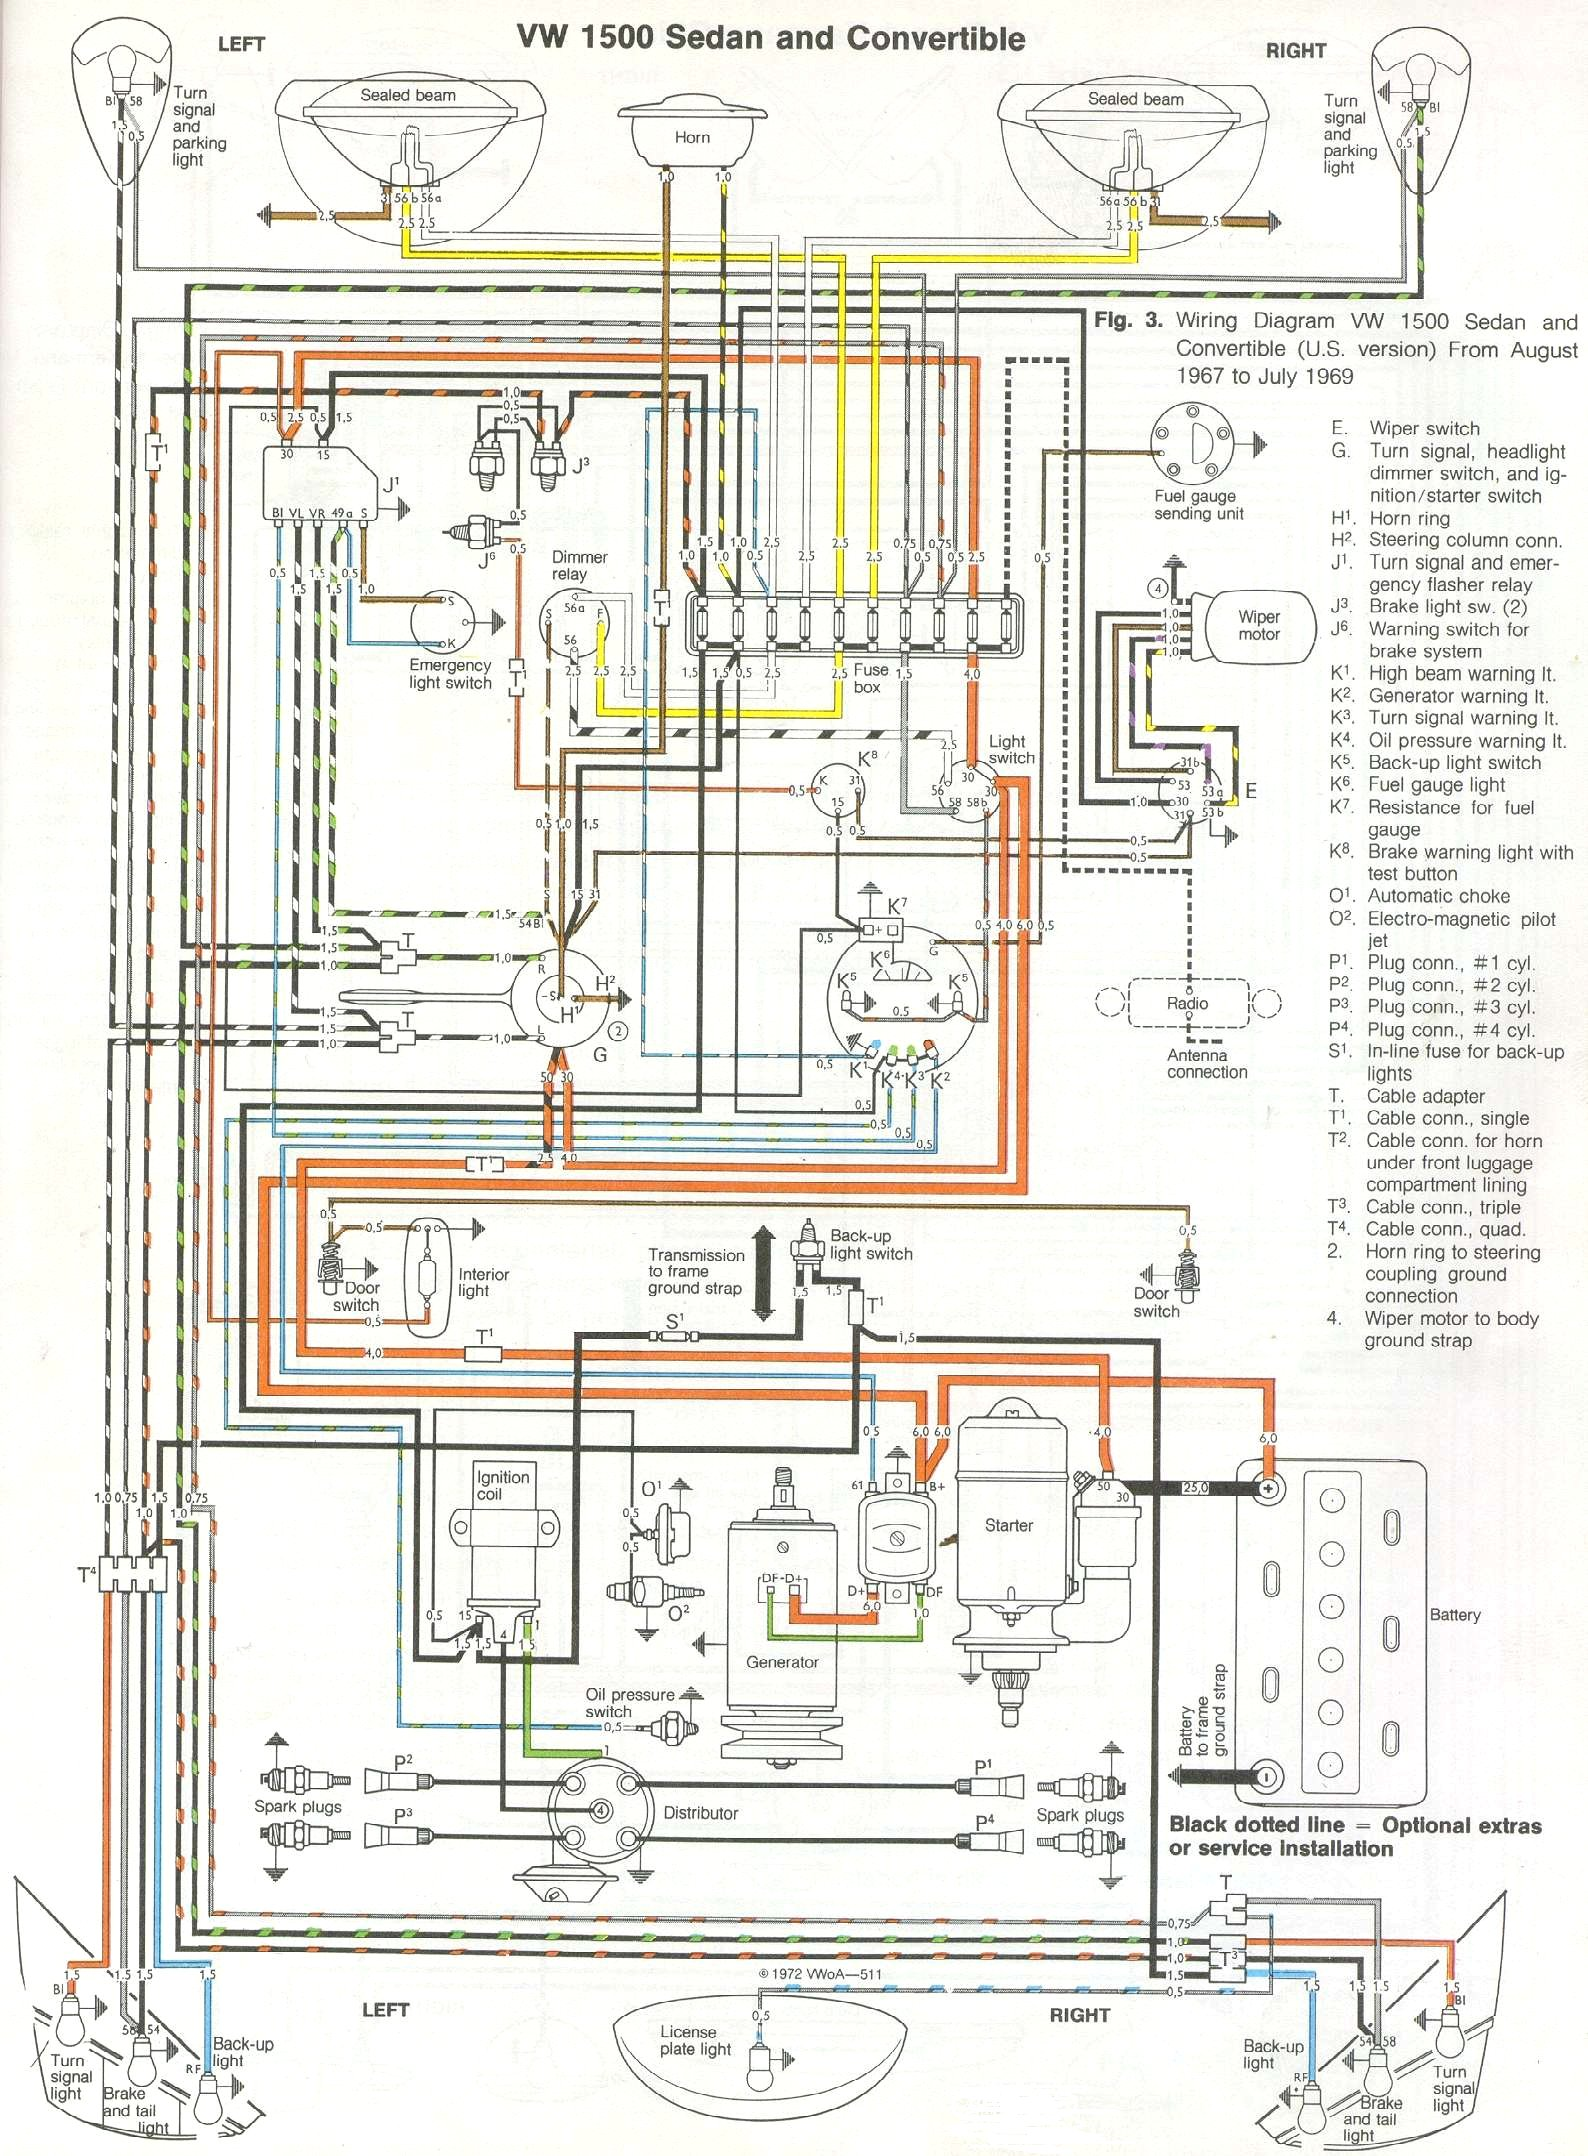 wiring diagram for 1969 vw beetle learn circuit diagram u2022 rh gadgetowl co